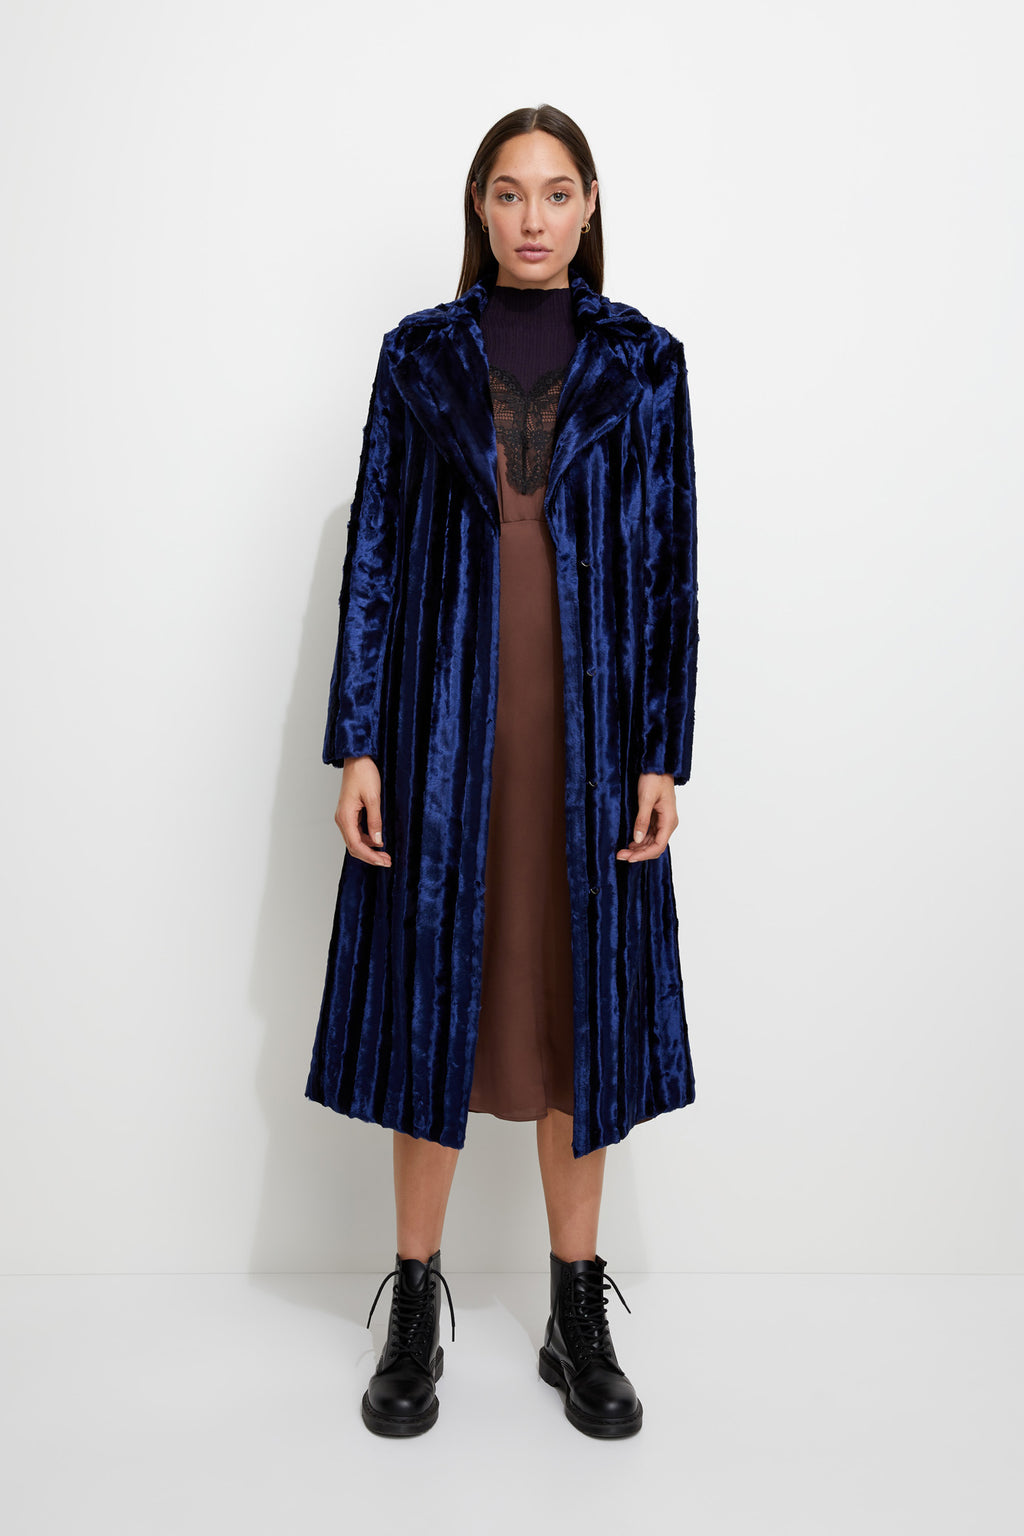 Velvet Underground Coat in Navy